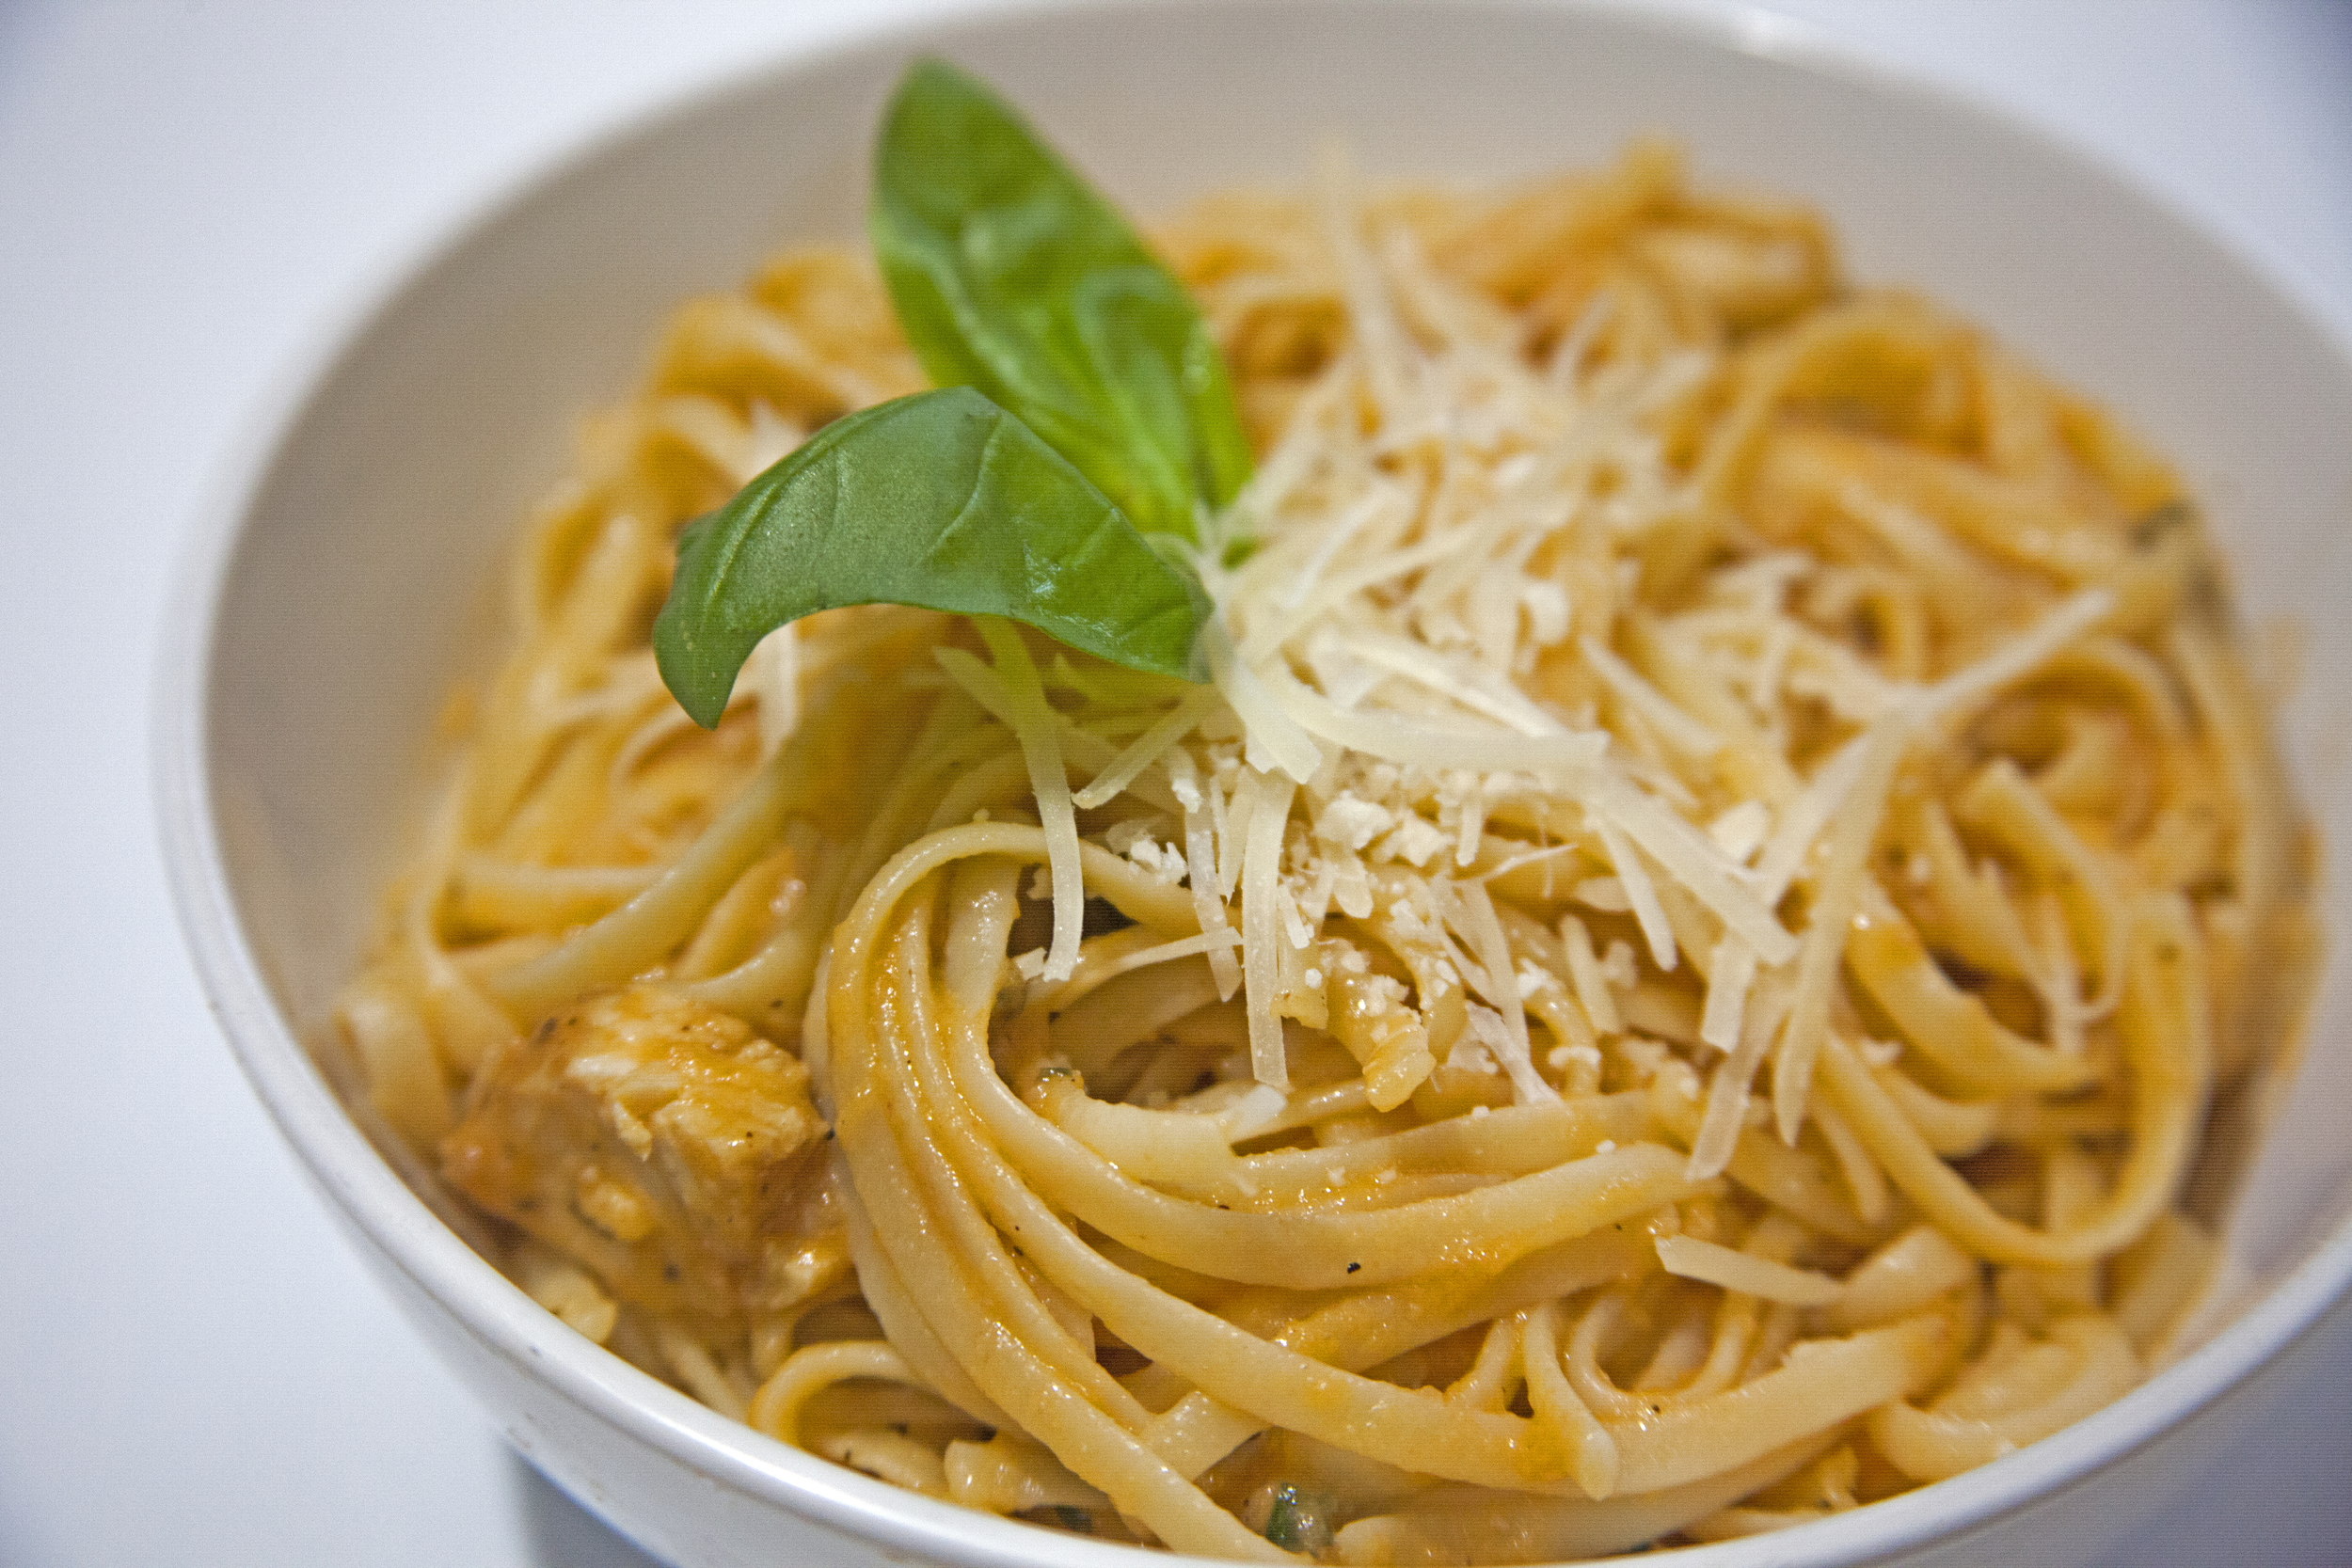 Linguine with Herb Grilled Chicken in Tomato Basil Sauce